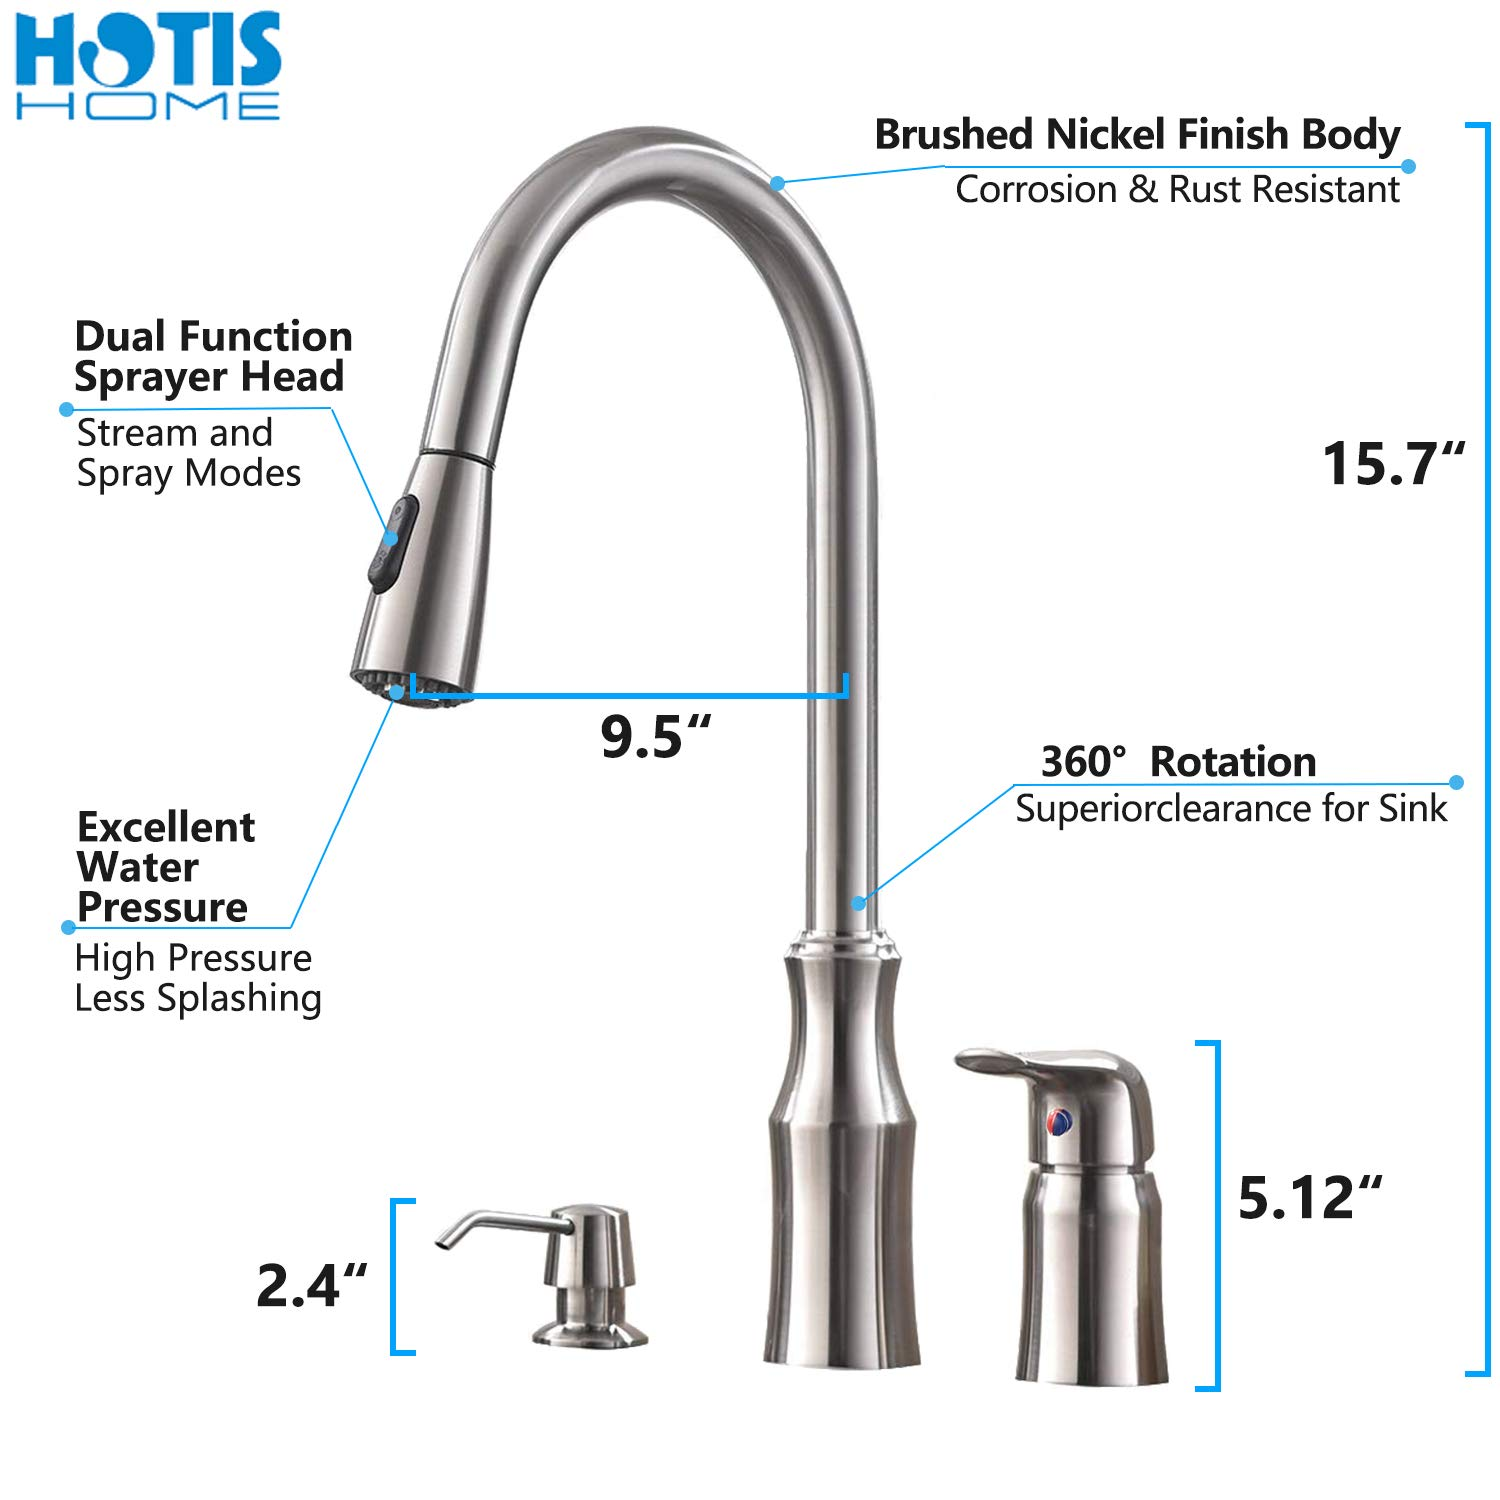 Hotis 3 Hole Kitchen Sink Faucet with Pull Down Sprayer Soap Dispenser Stainless Steel Single Handle Kitchen Faucet, Brushed Nickel by HOTIS HOME (Image #2)